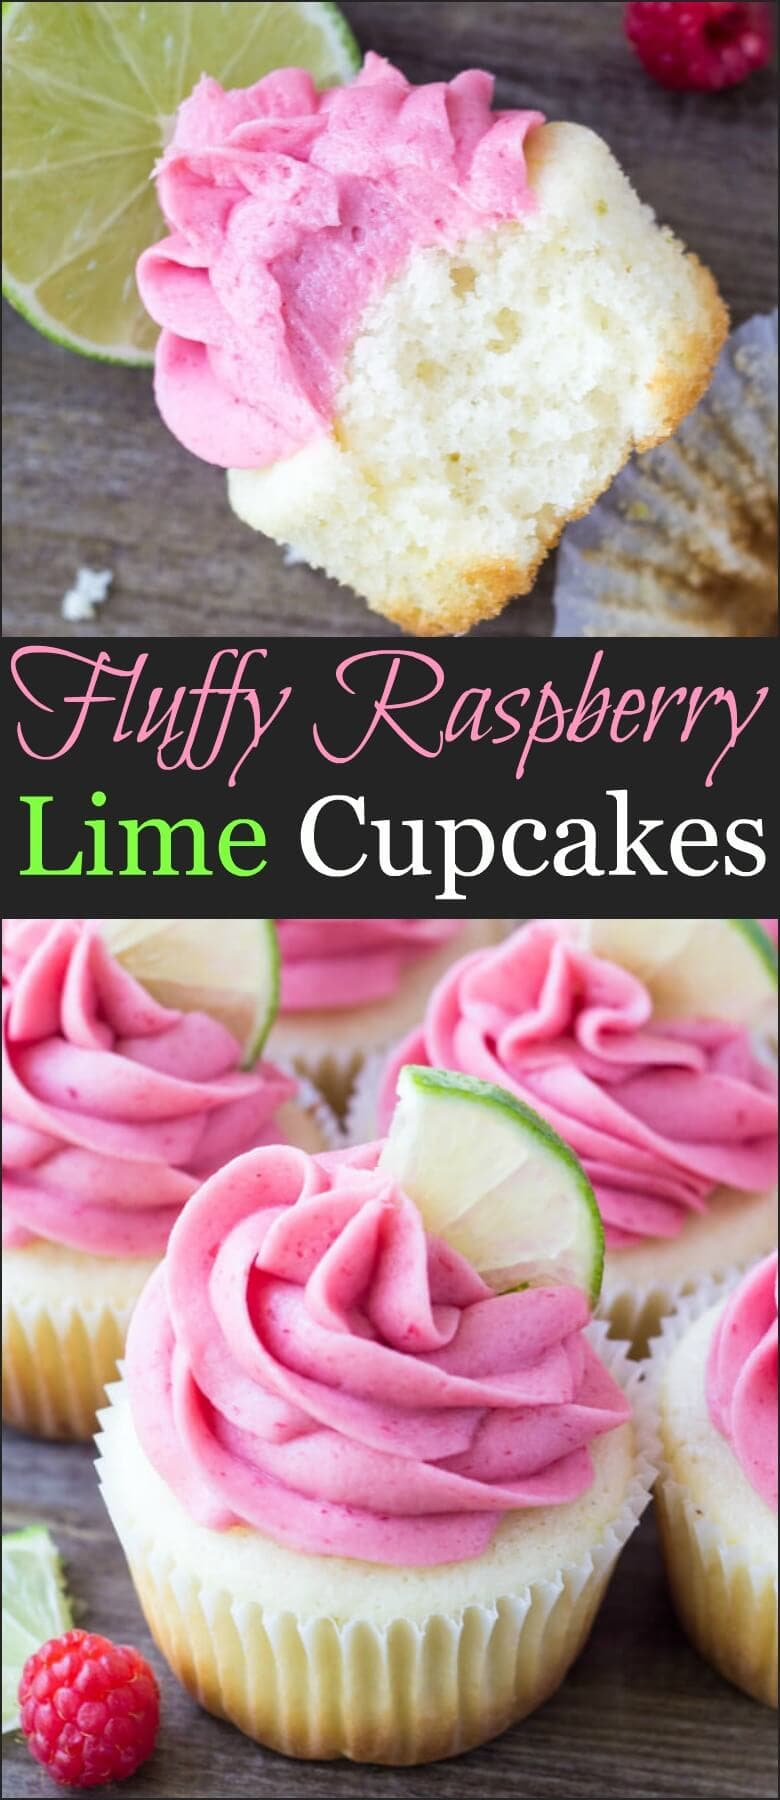 These Raspberry Lime Cupcakes are so pretty and have such a fun flavor combo. They start with moist vanilla cupcakes with a fresh hint of lime, then they're frosted with raspberry buttercream made from fresh berries.